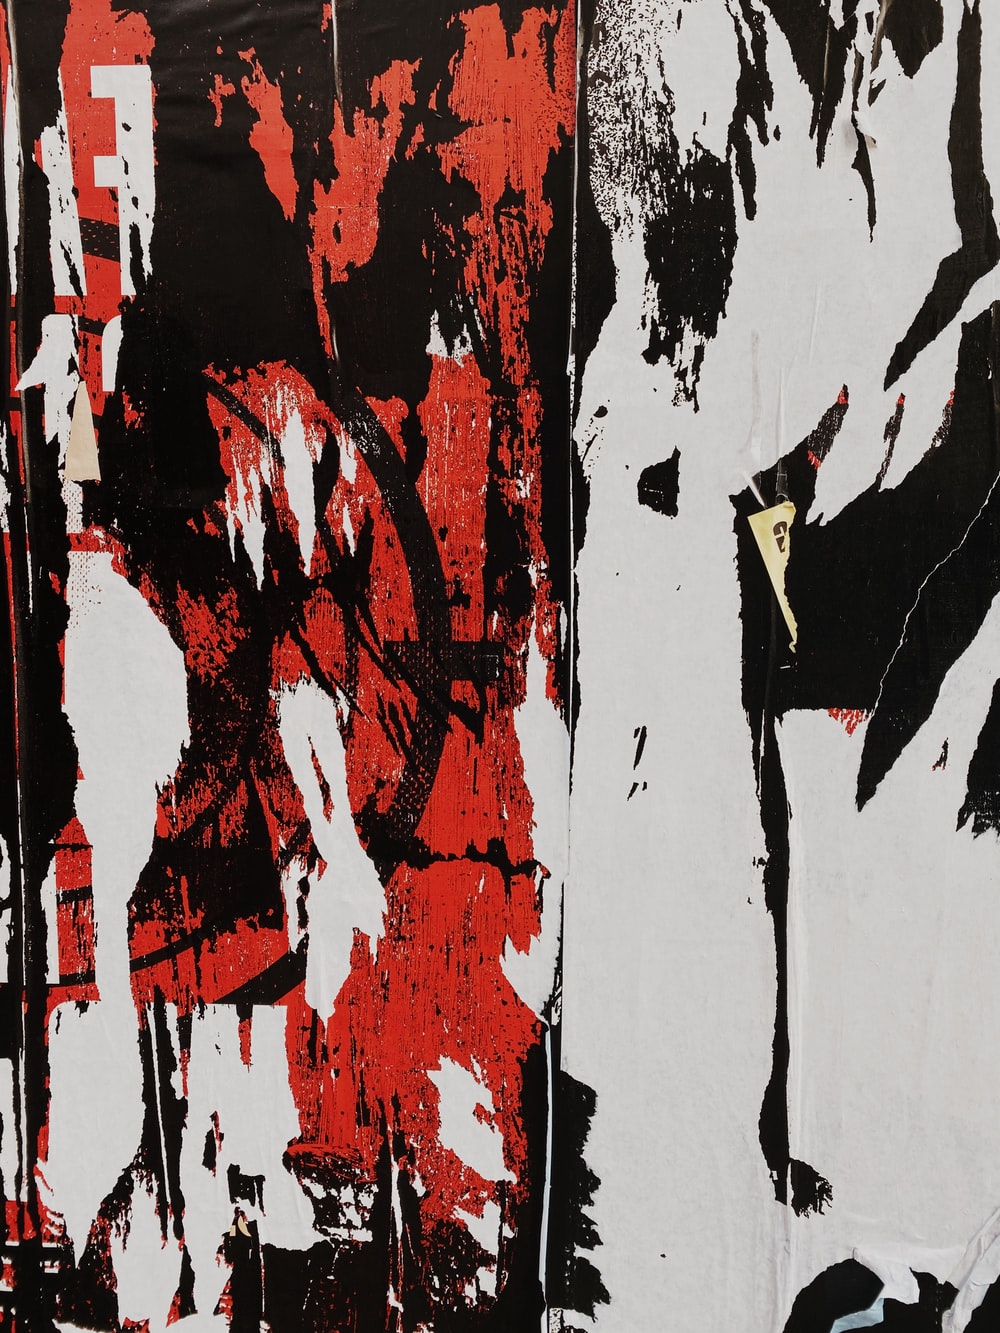 Black White And Red Abstract Painting